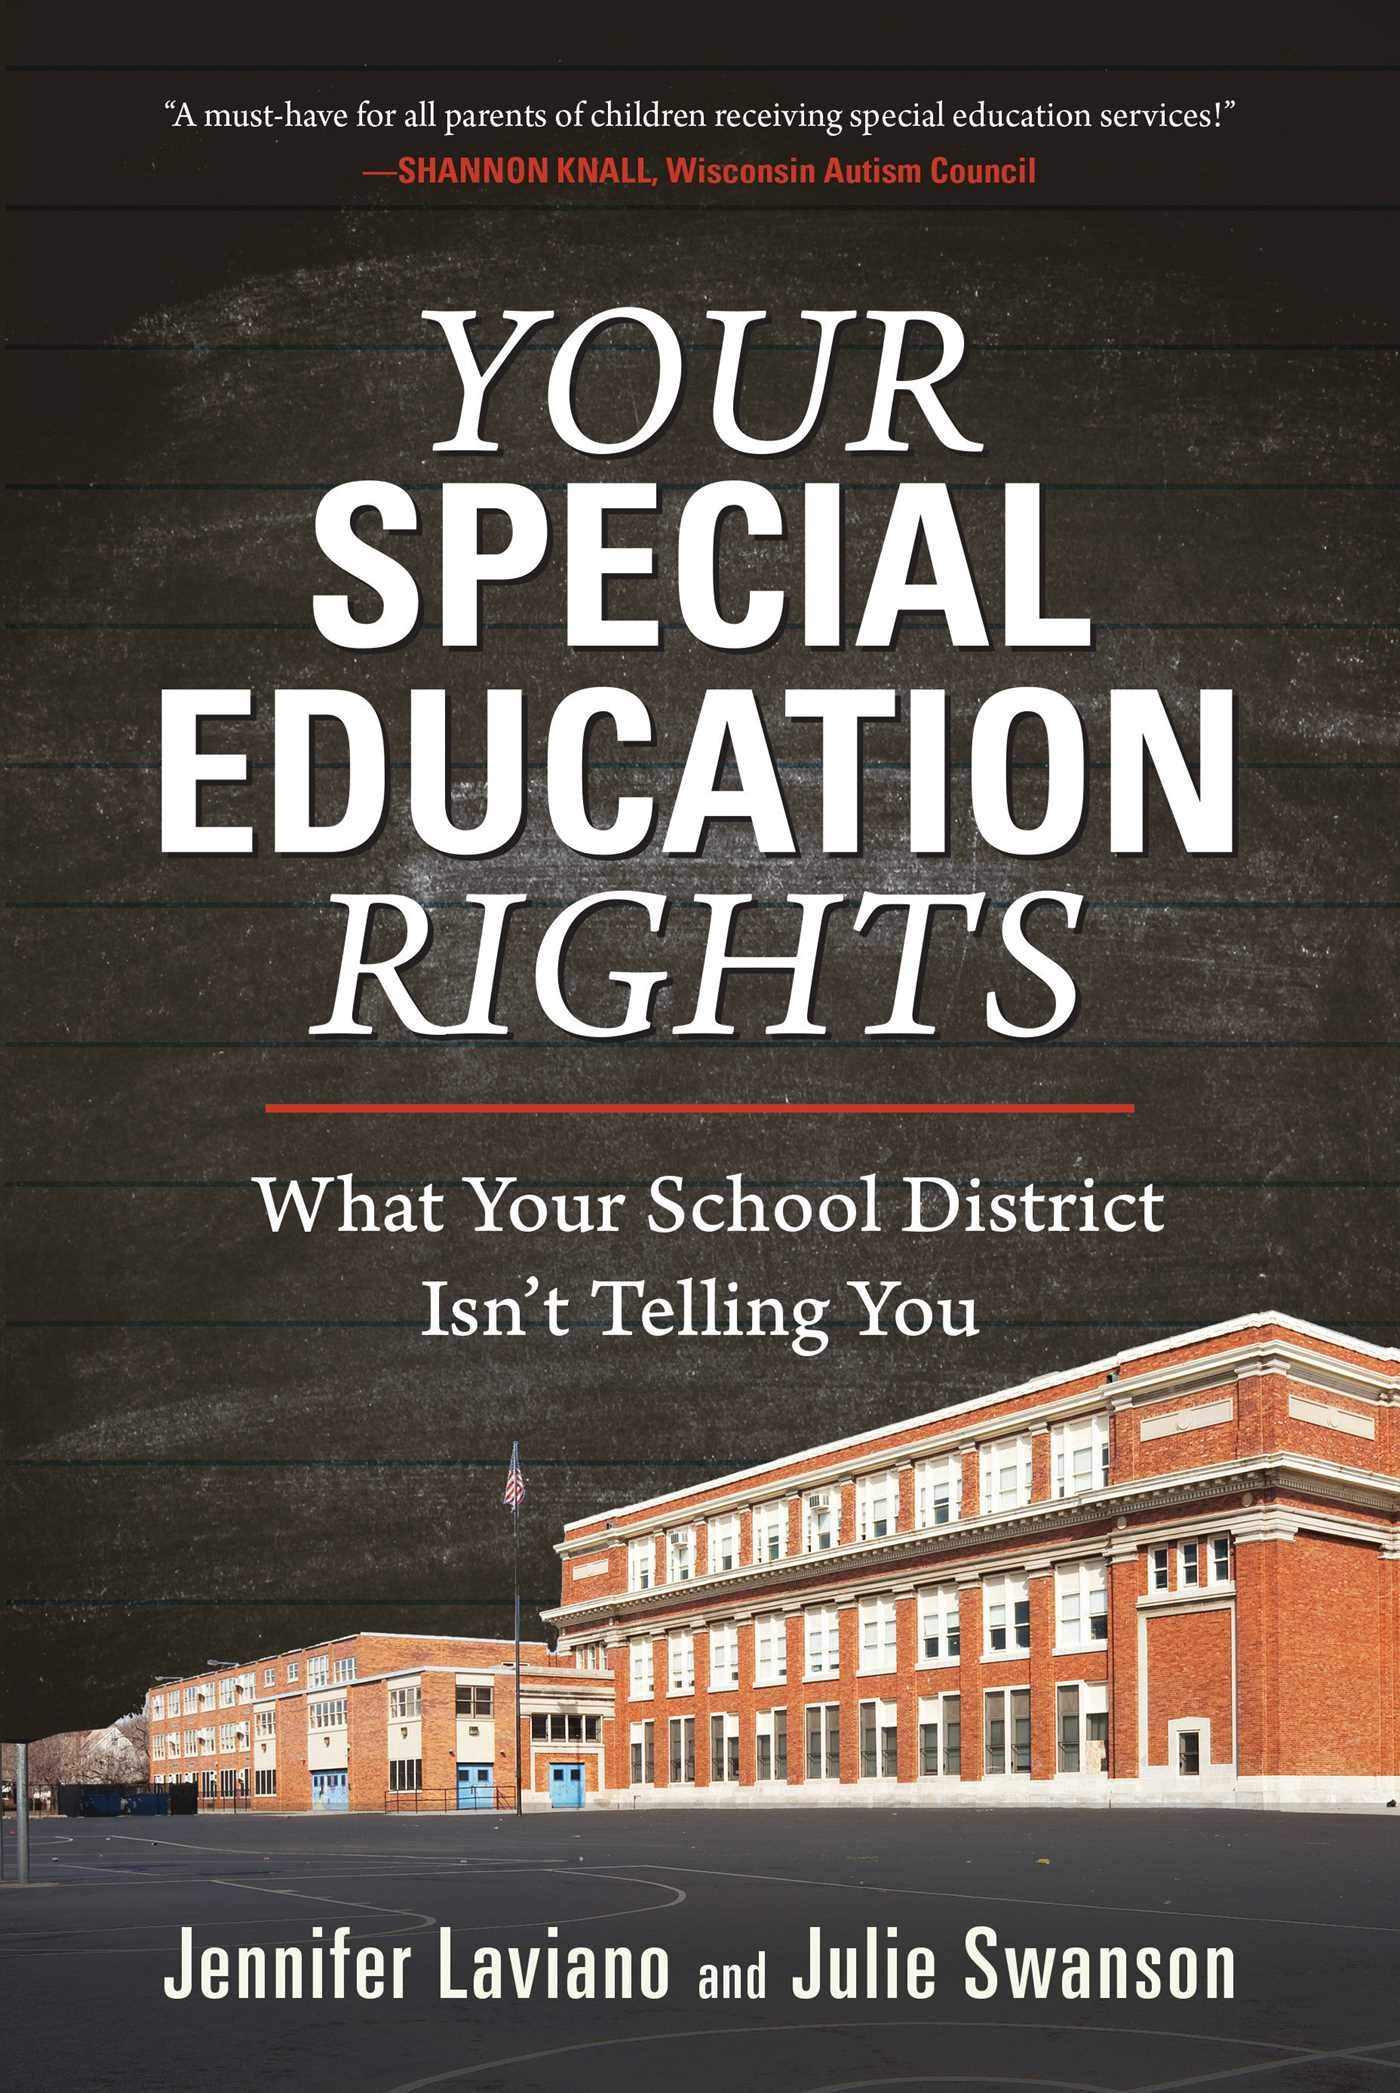 Parents Know Your Special Education >> Your Special Education Rights What Your School District Isn T